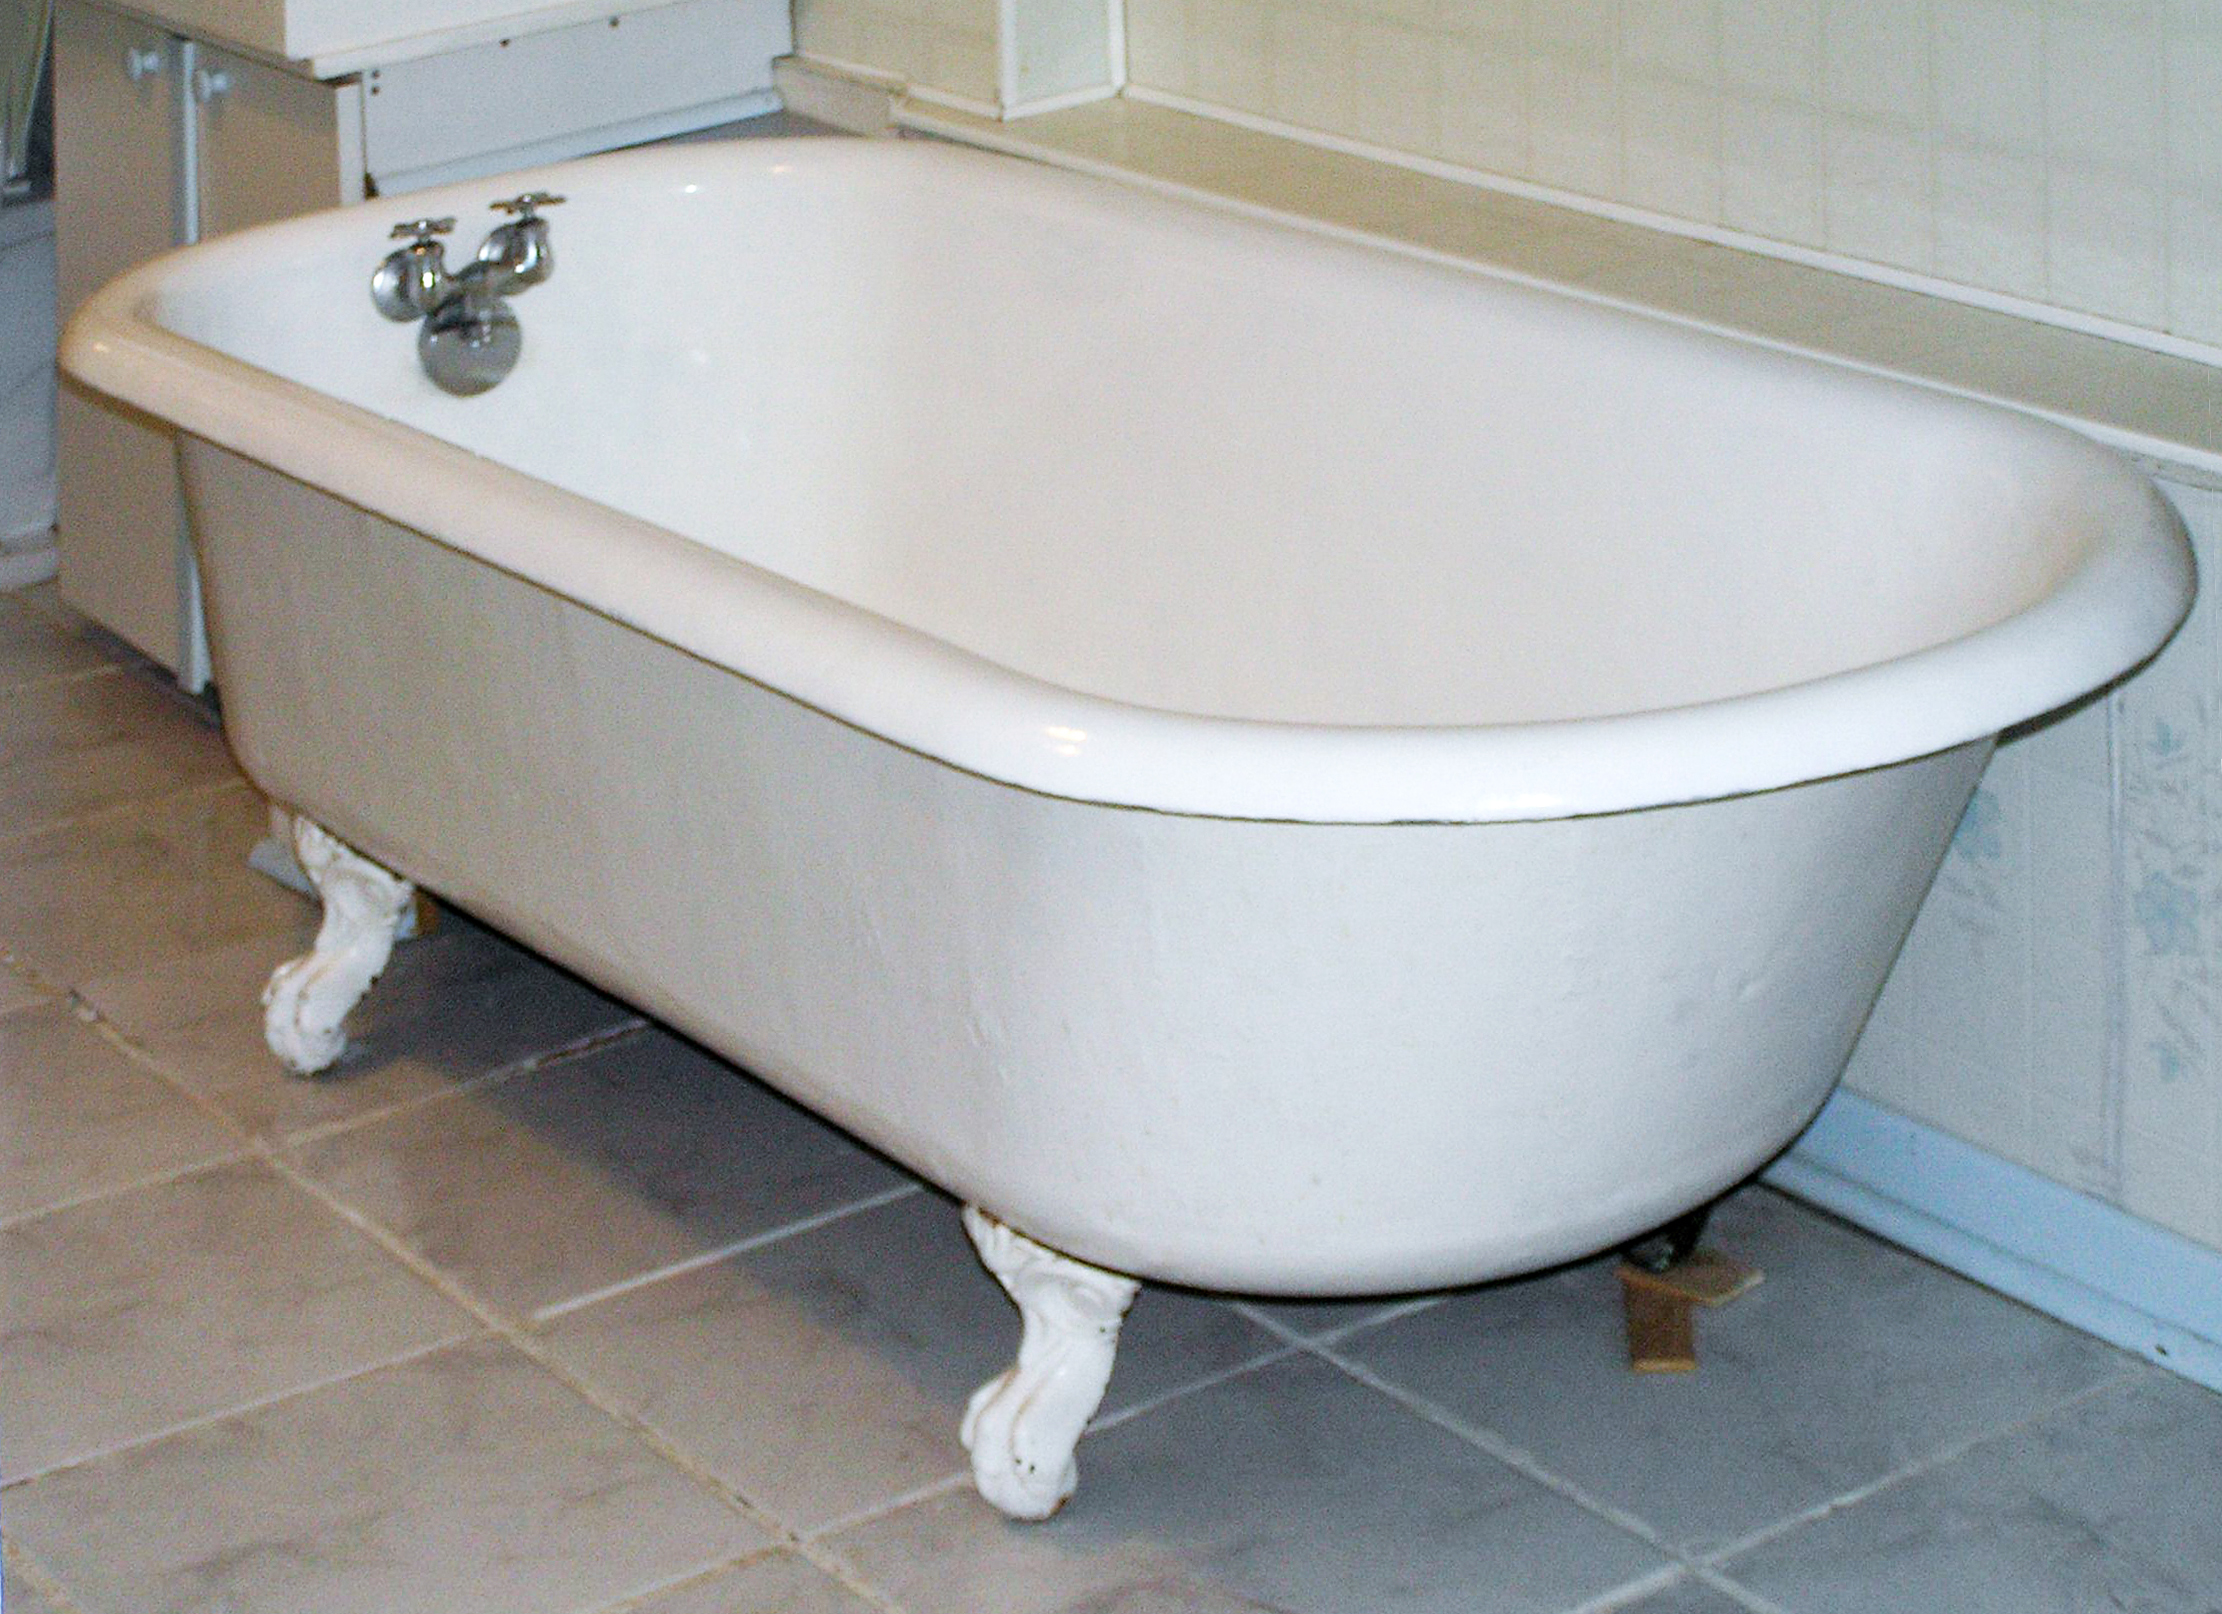 File:Clawfoot bathtub.jpg - Wikimedia Commons